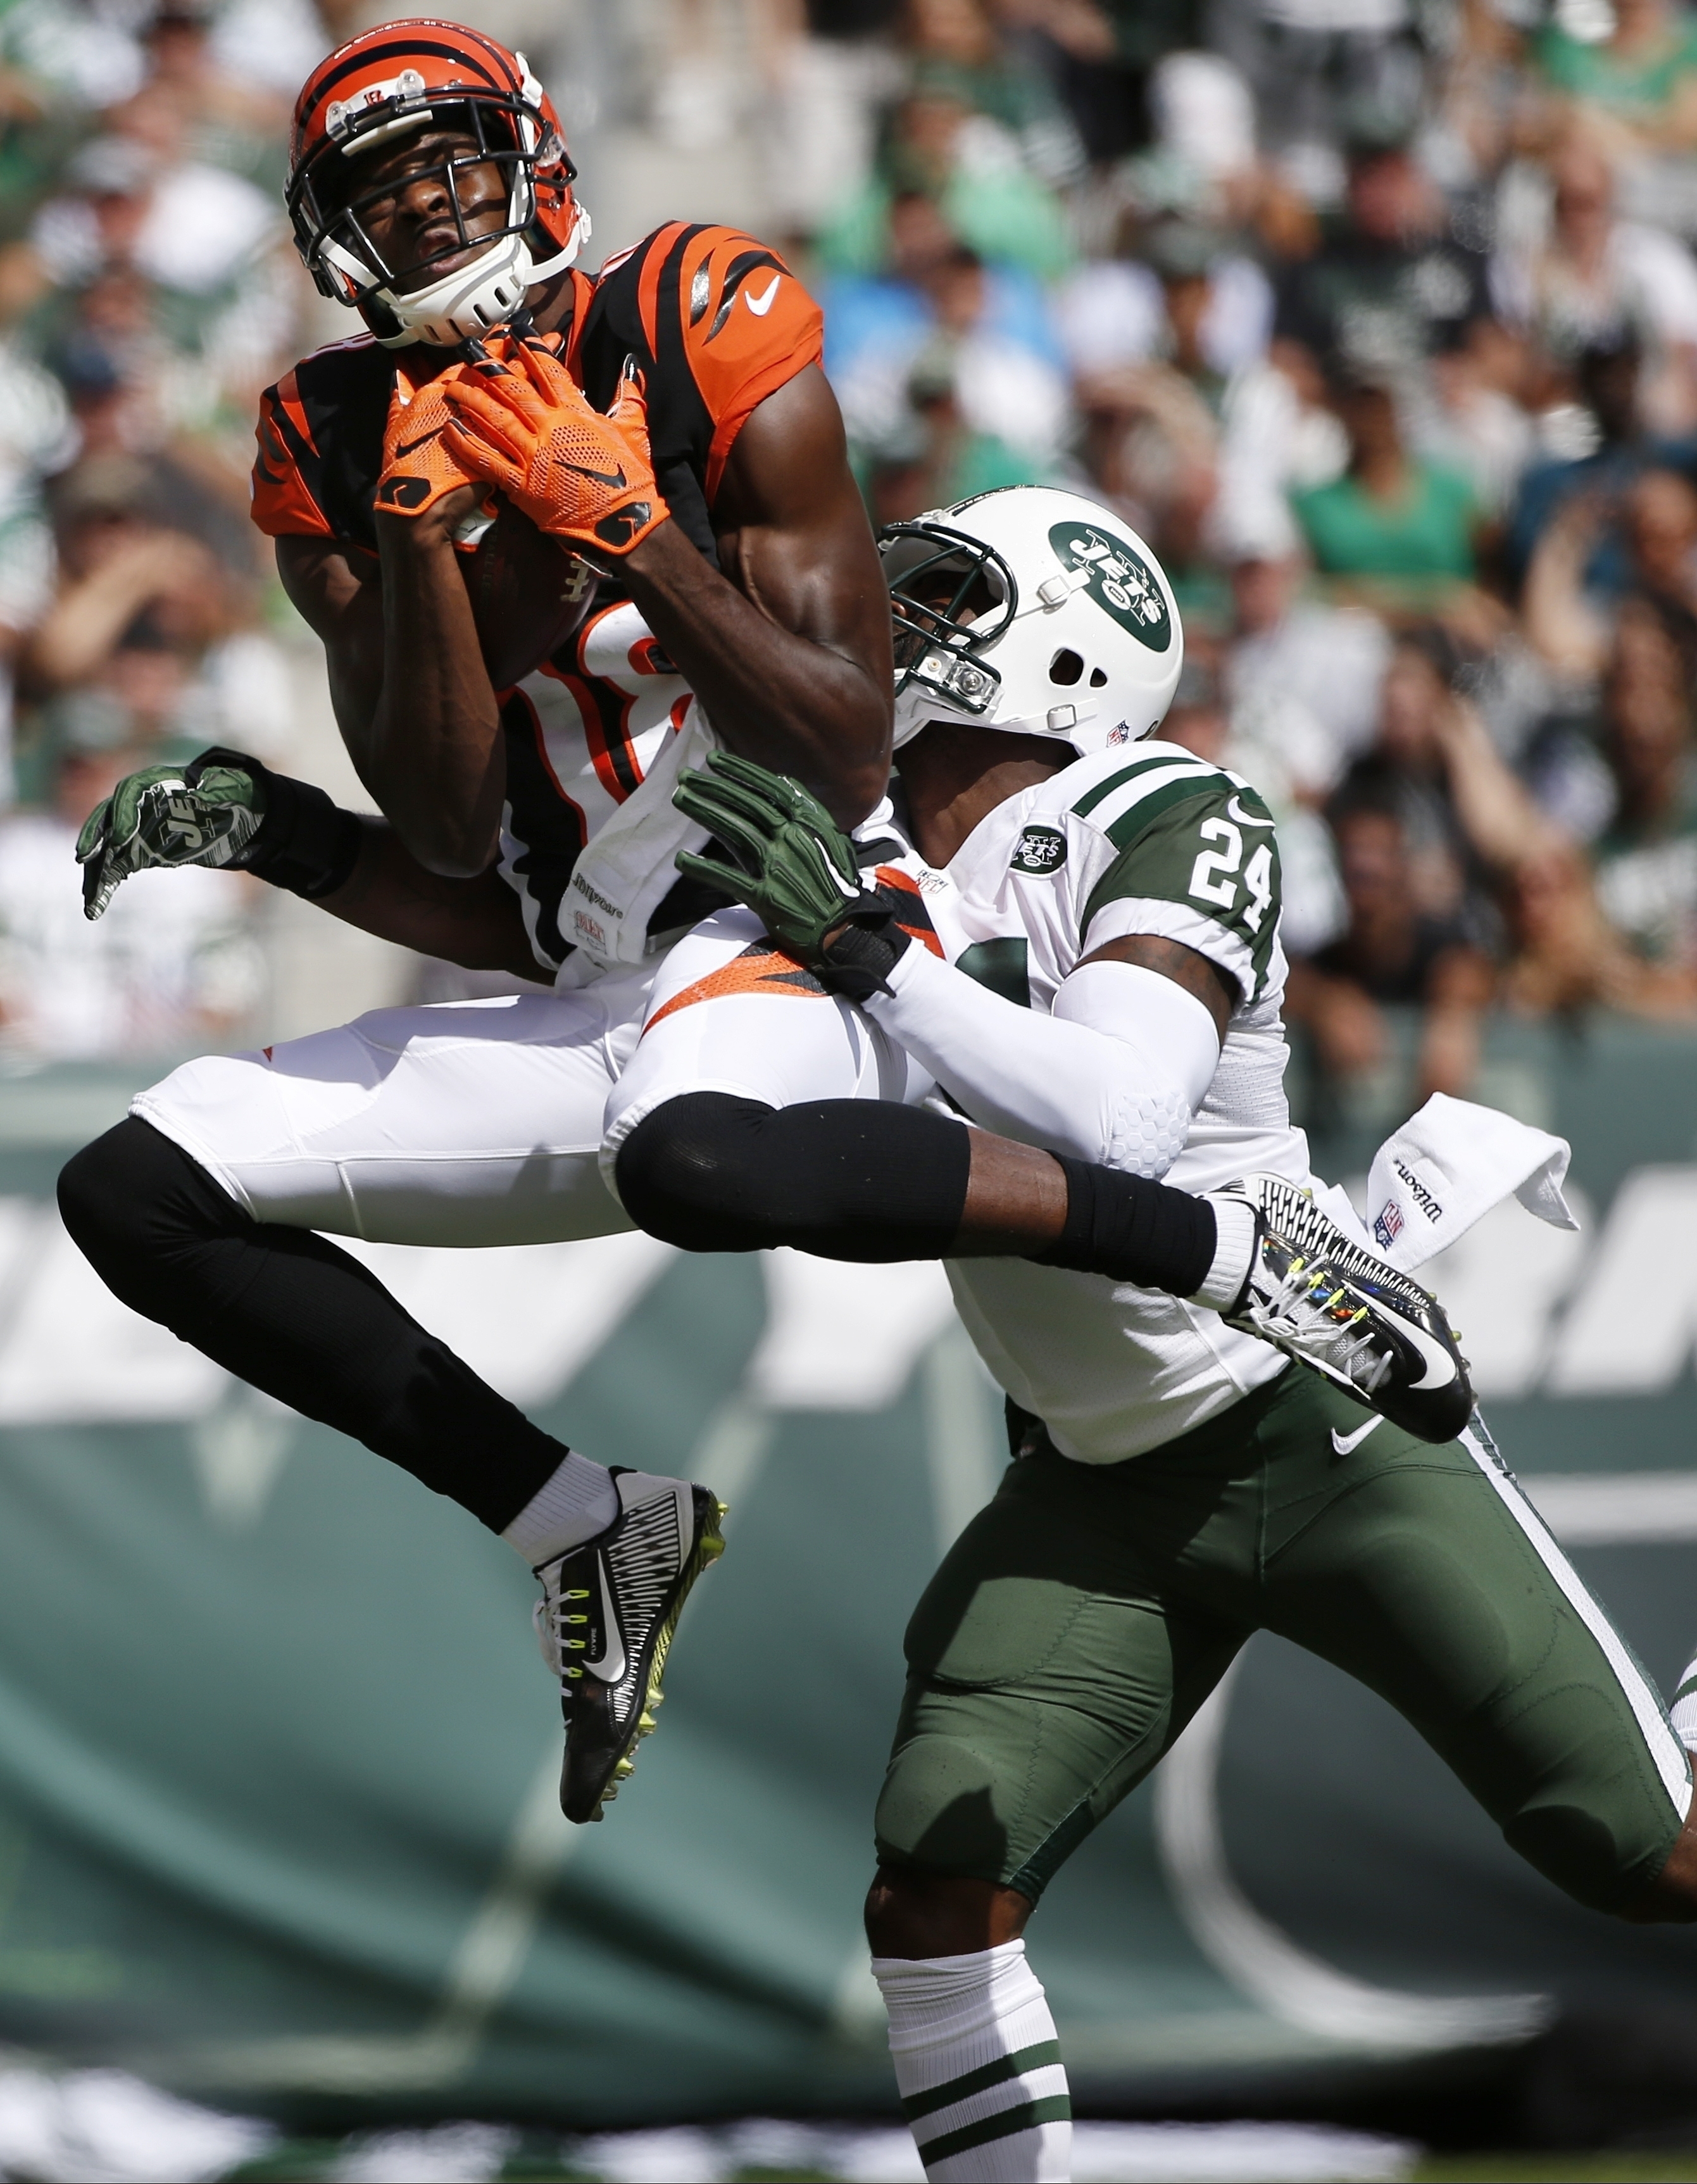 FILE - In this Sept. 11, 2016, file photo, Cincinnati Bengals' A.J. Green (18) catches a pass in front of New York Jets' Darrelle Revis (24) during the first half of an NFL football game, in East Rutherford, N.J. The Bengals play the Cleveland Browns on S